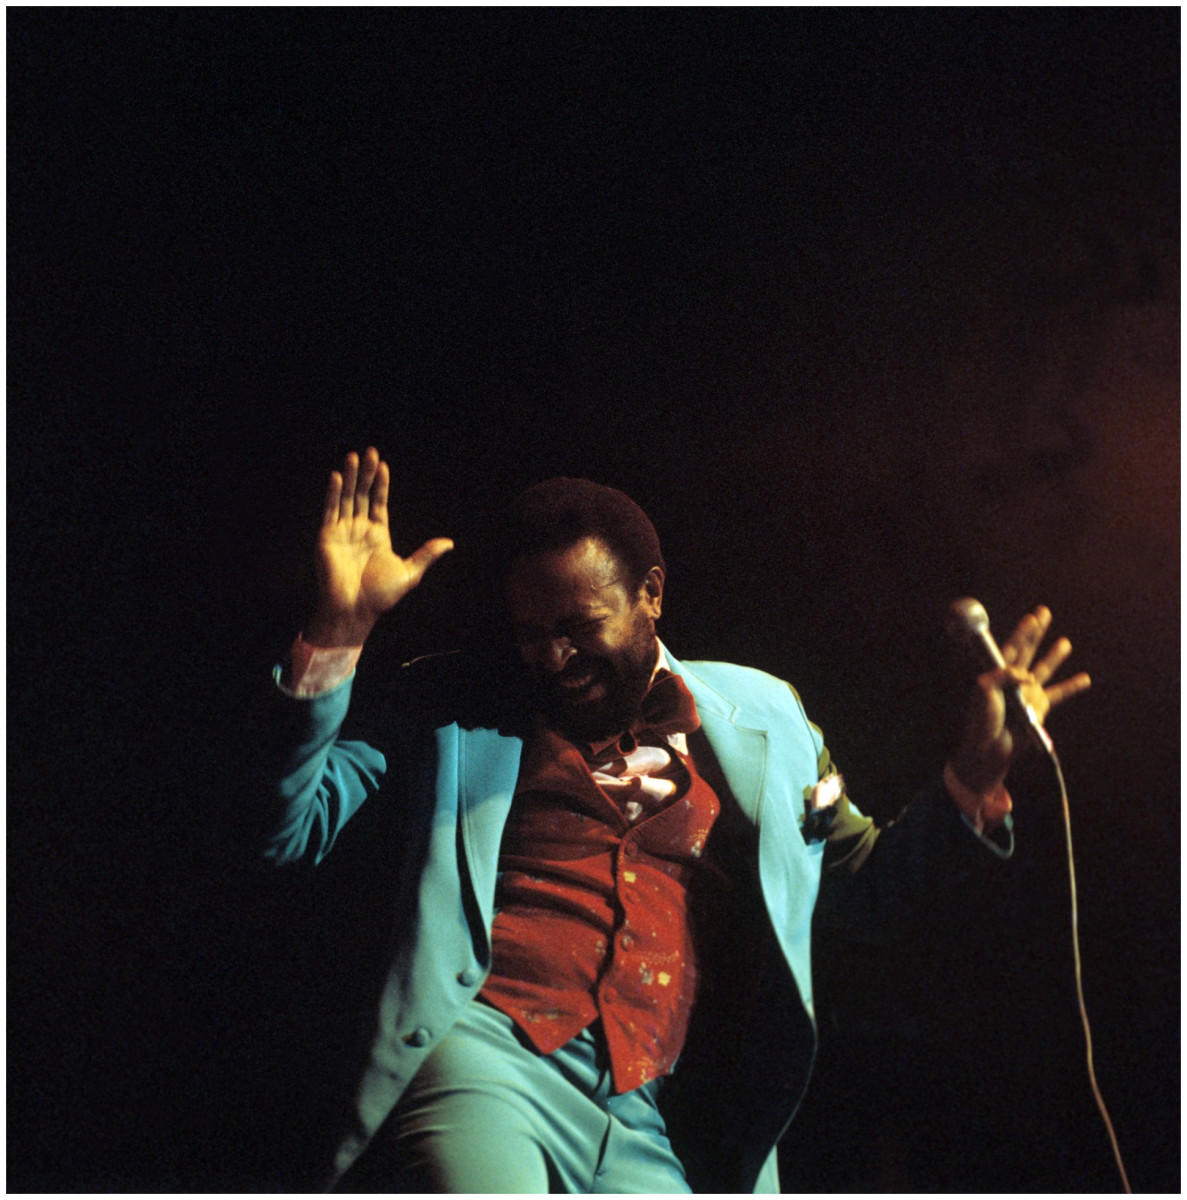 marvin-gaye-performs-on-stage-at-the-royal-albert-hall-london1976